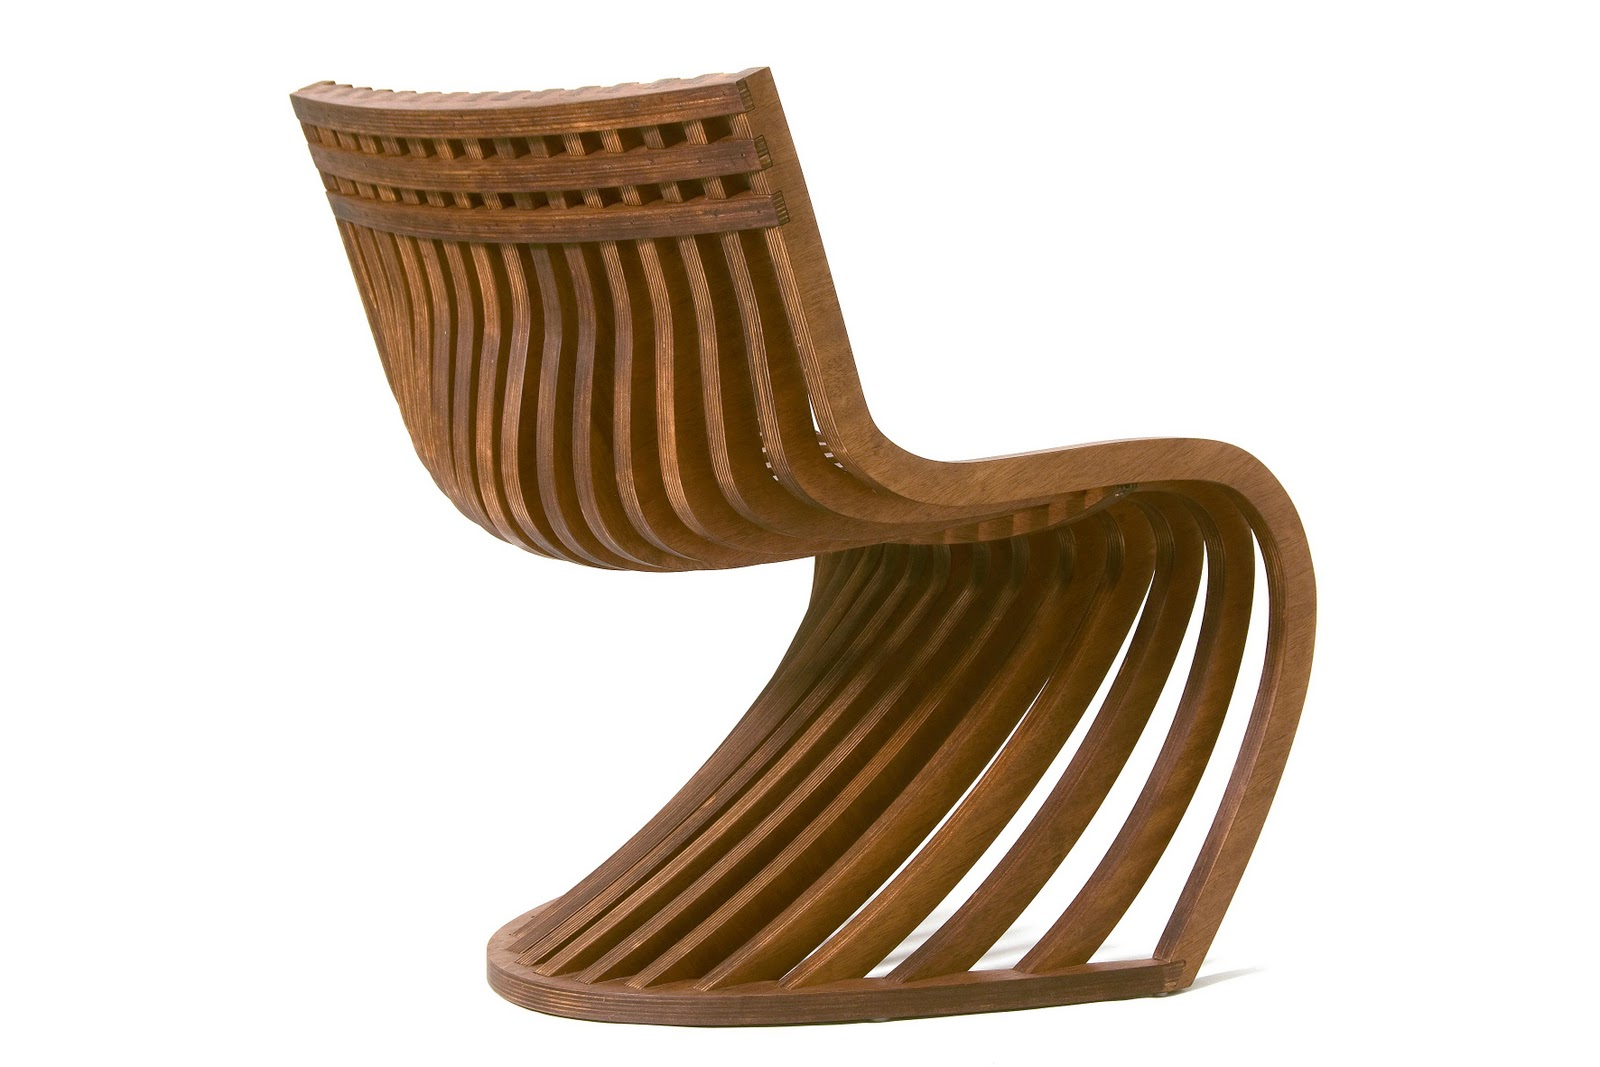 Gift Home Today Contemporary Furniture In Exotic Wood Fine Leather Furniture Gifts